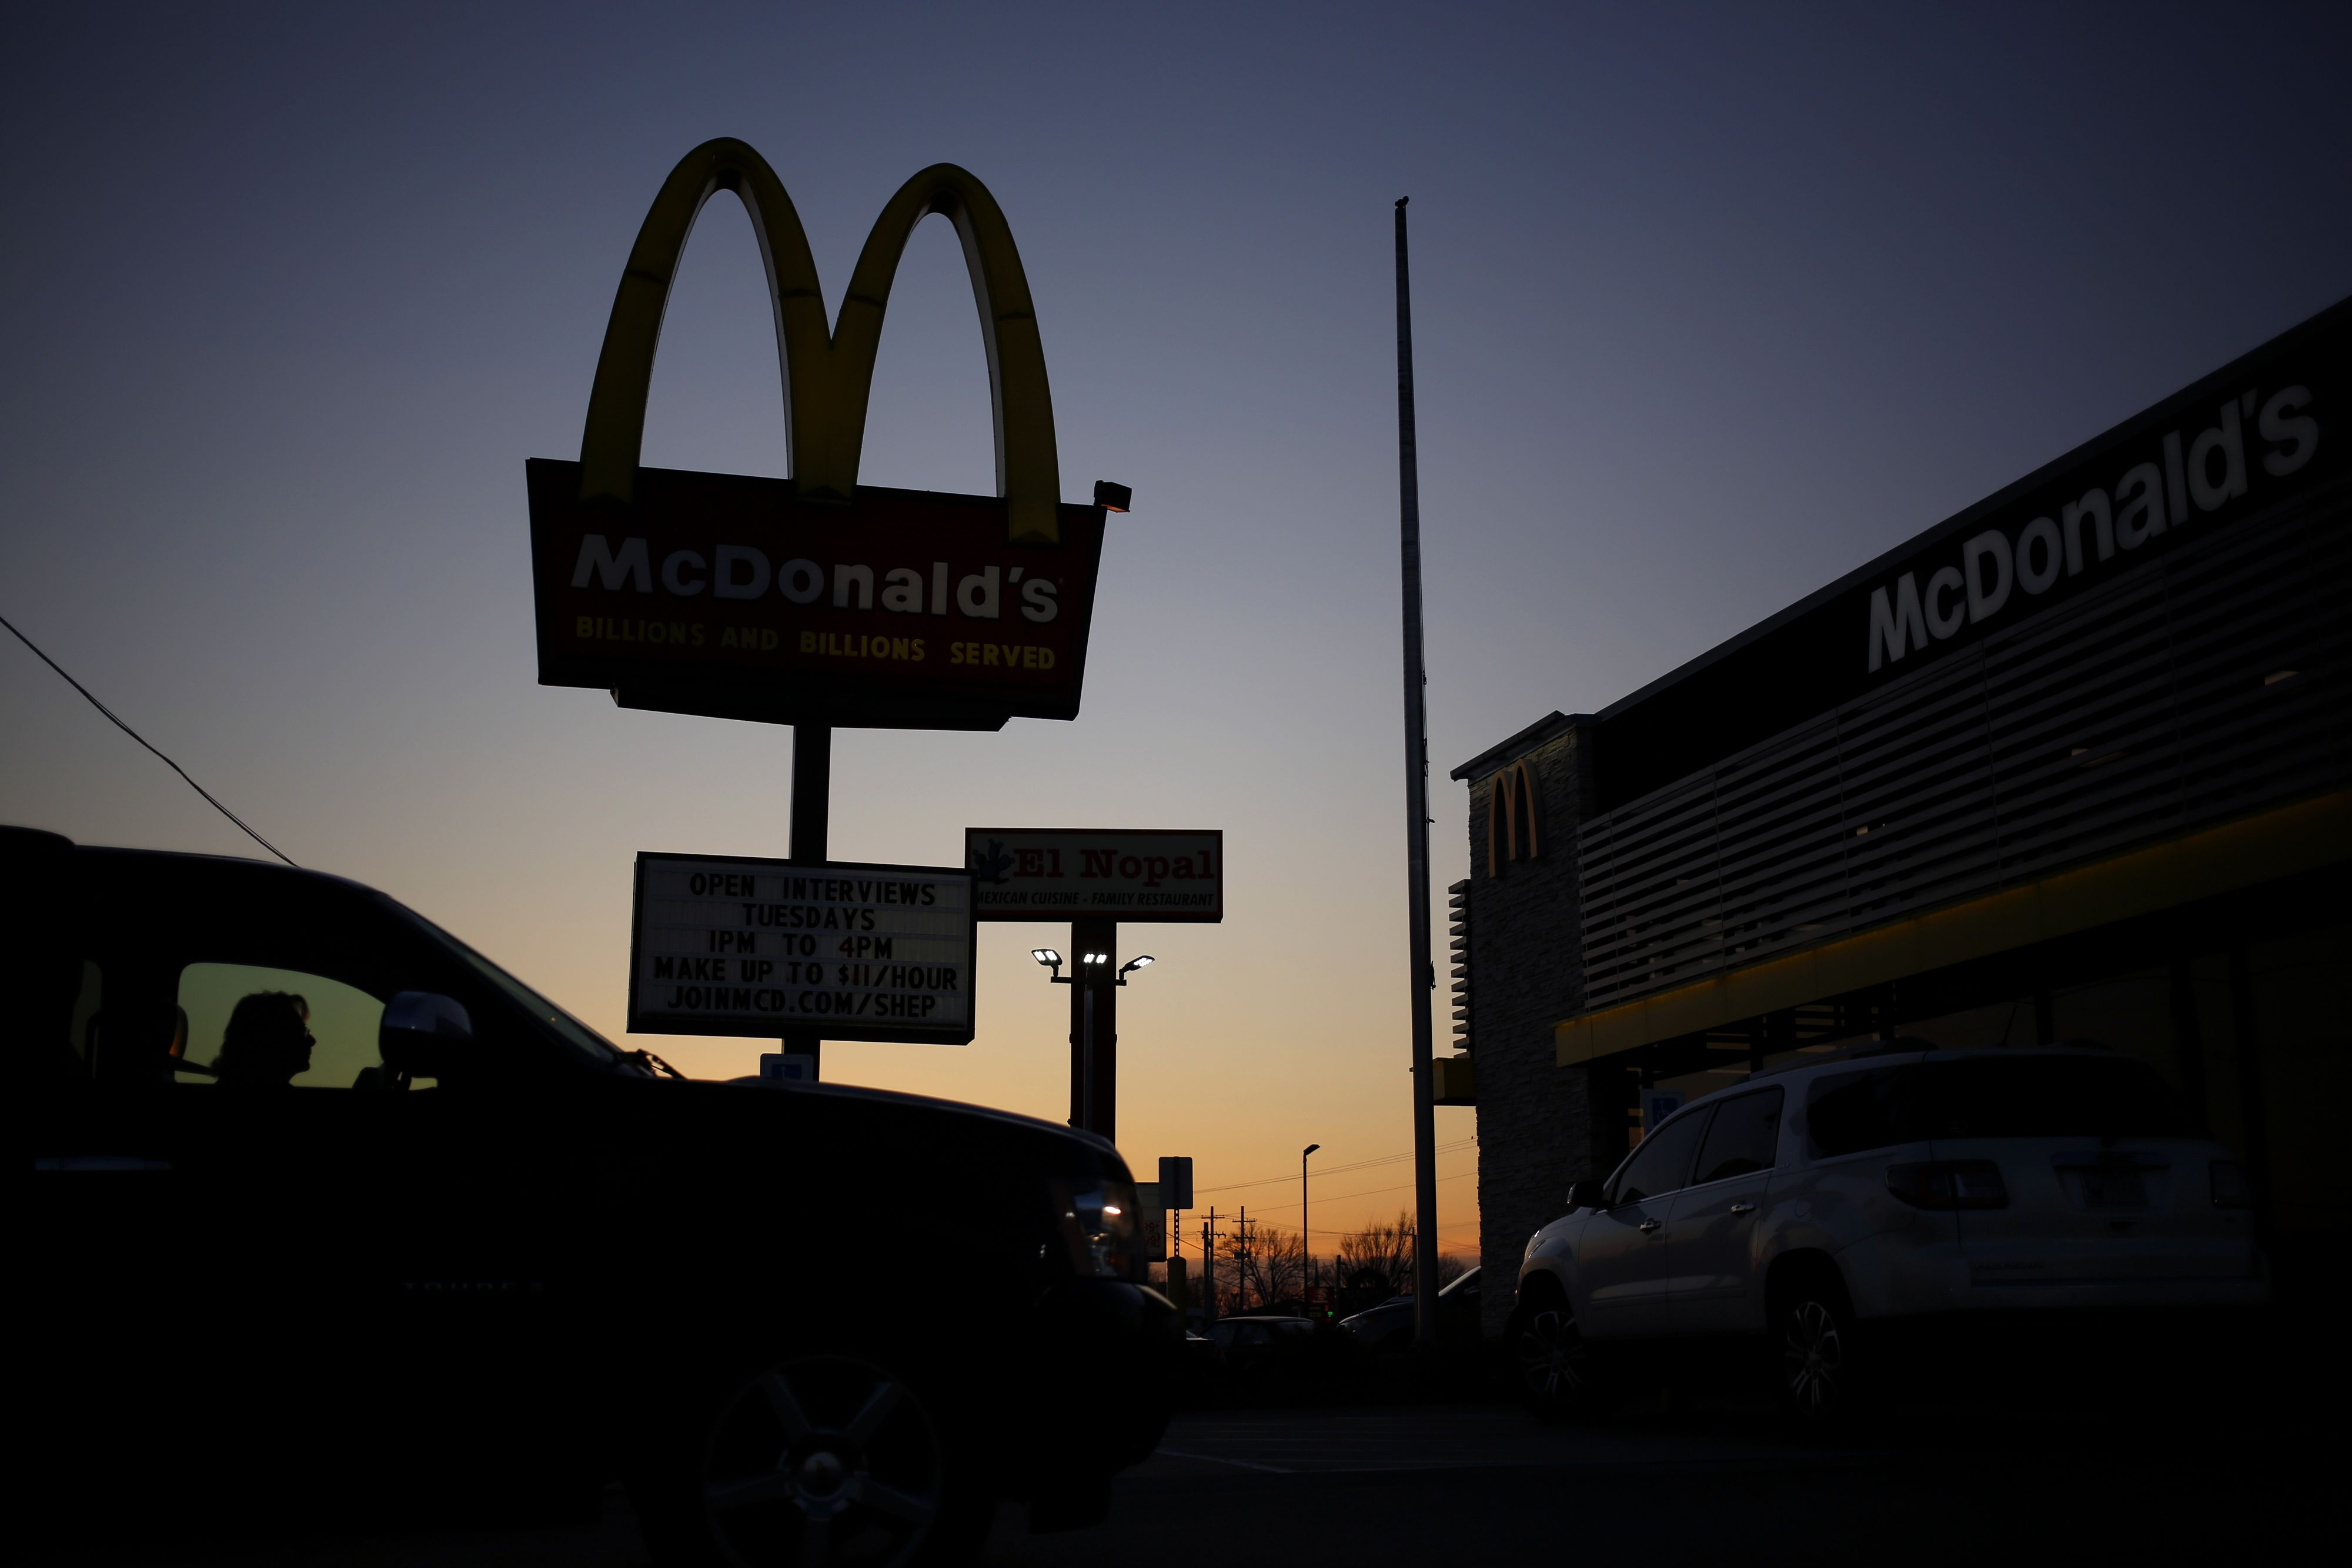 Earnings season sees some big whiffs on Tuesday with McDonalds, UPS and Lockheed